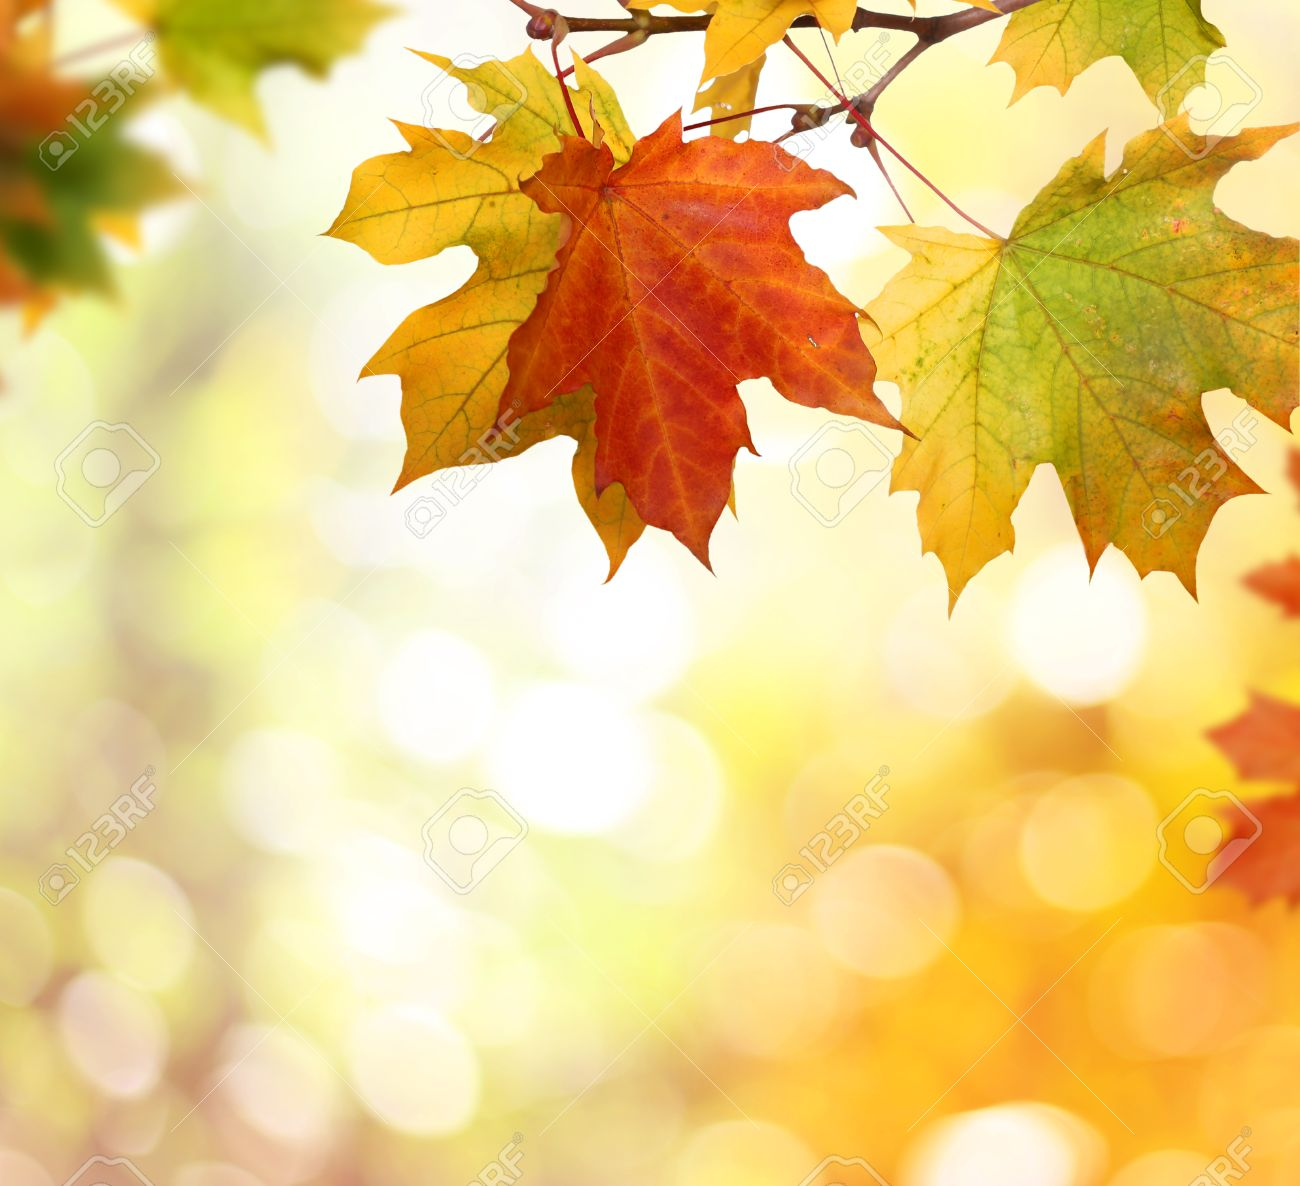 autumn background with falling leaves stock photo picture and